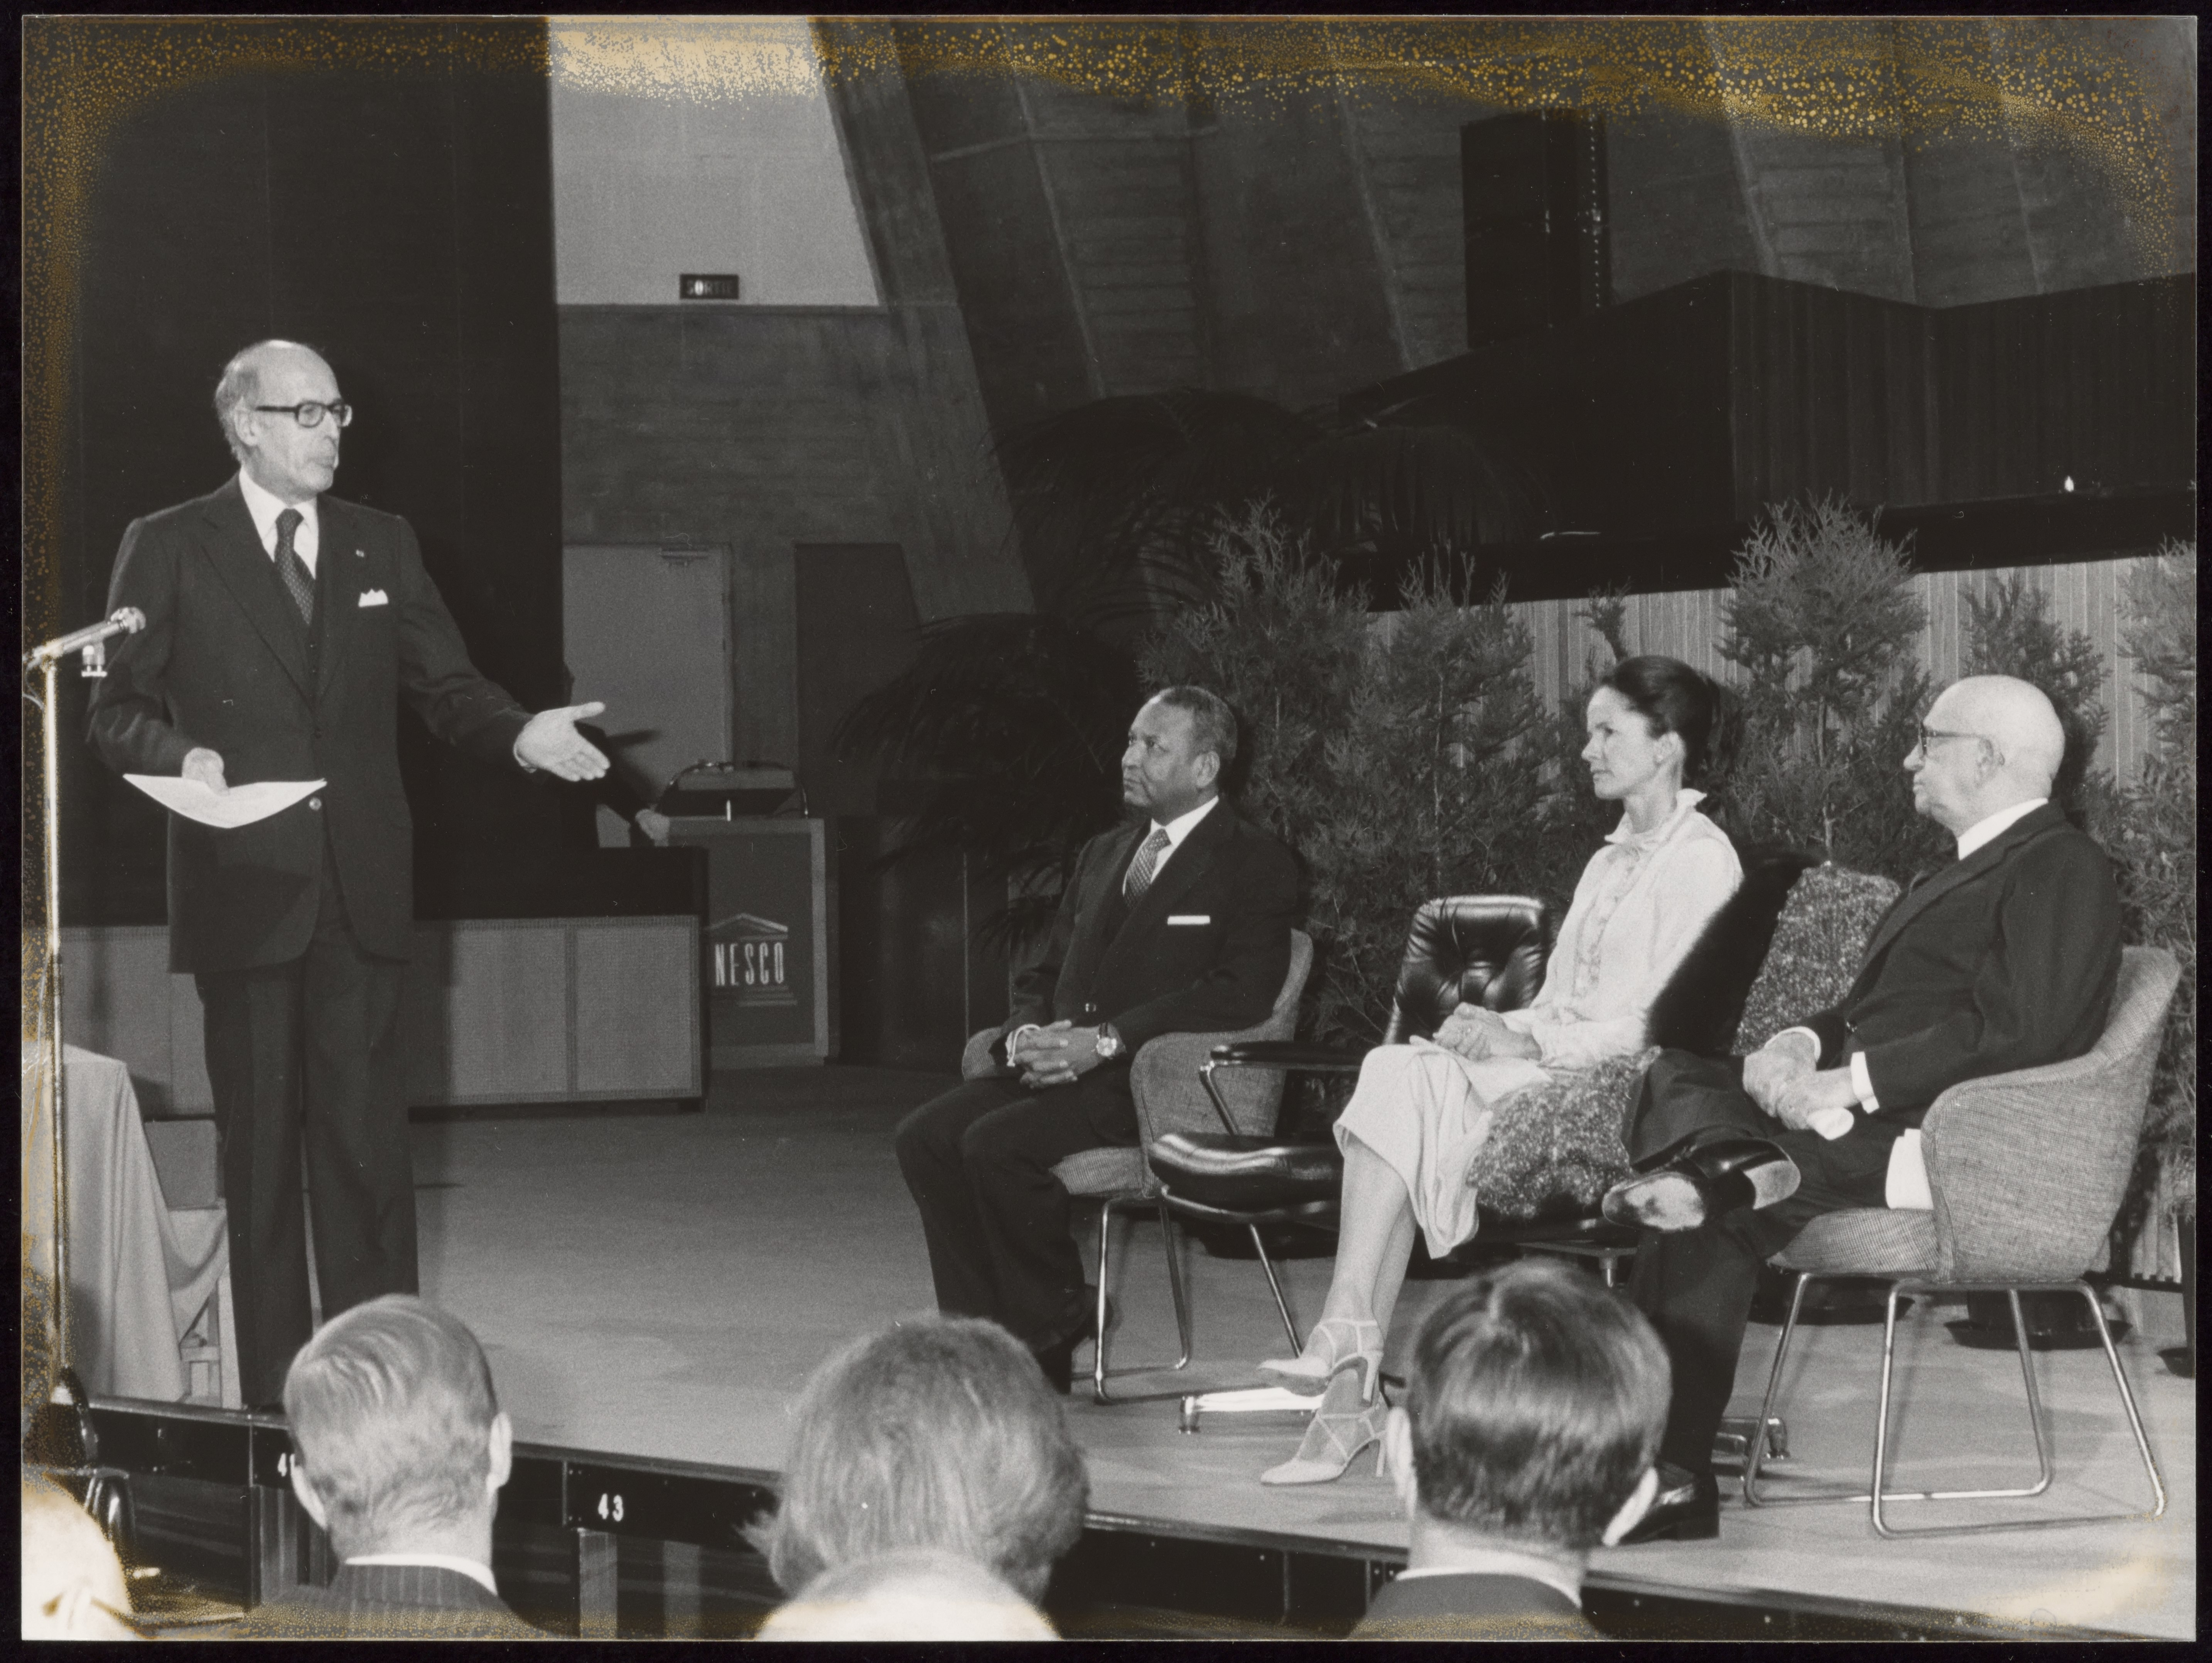 File:Unesco history, Ceremony for Valéry Giscard d'Estaing ...